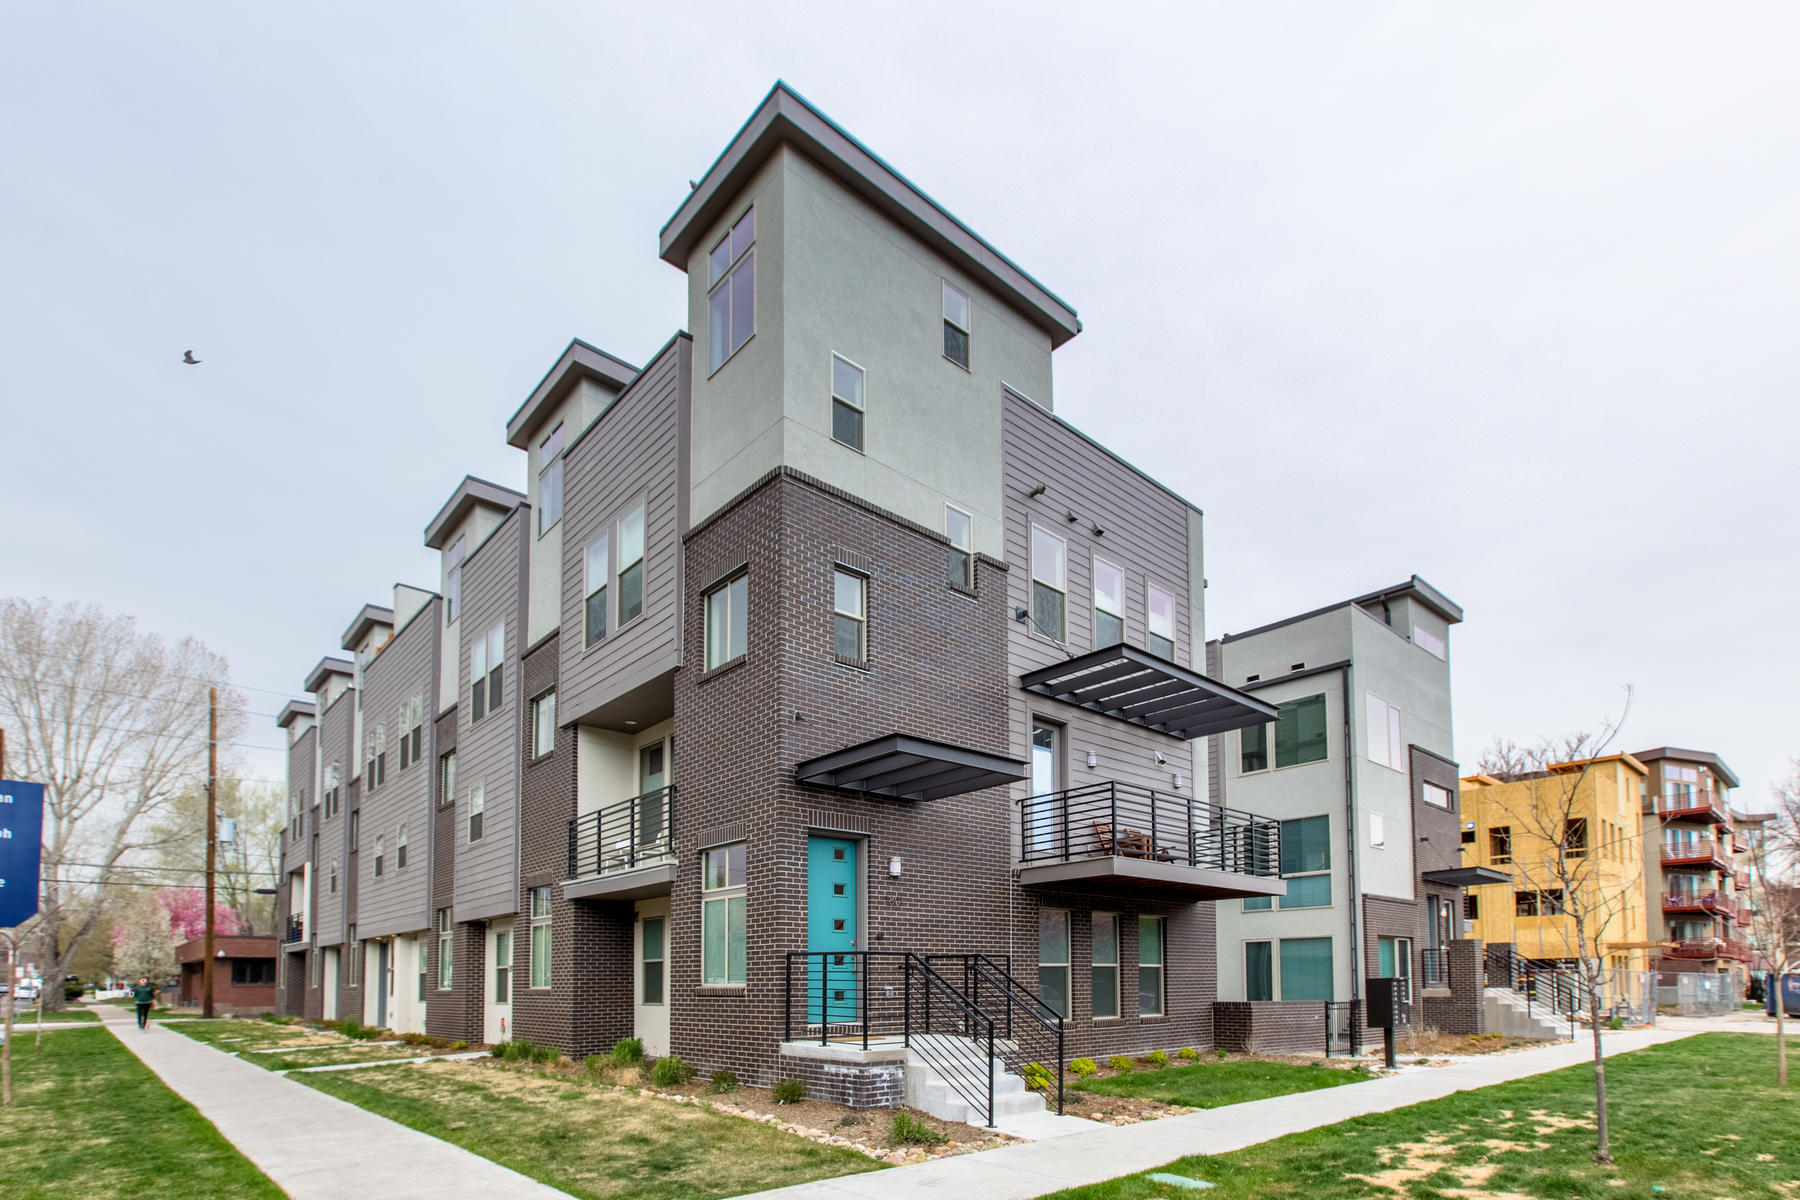 Single Family Home for Active at Gaylord Station 1821 Gaylord St Denver, Colorado 80206 United States